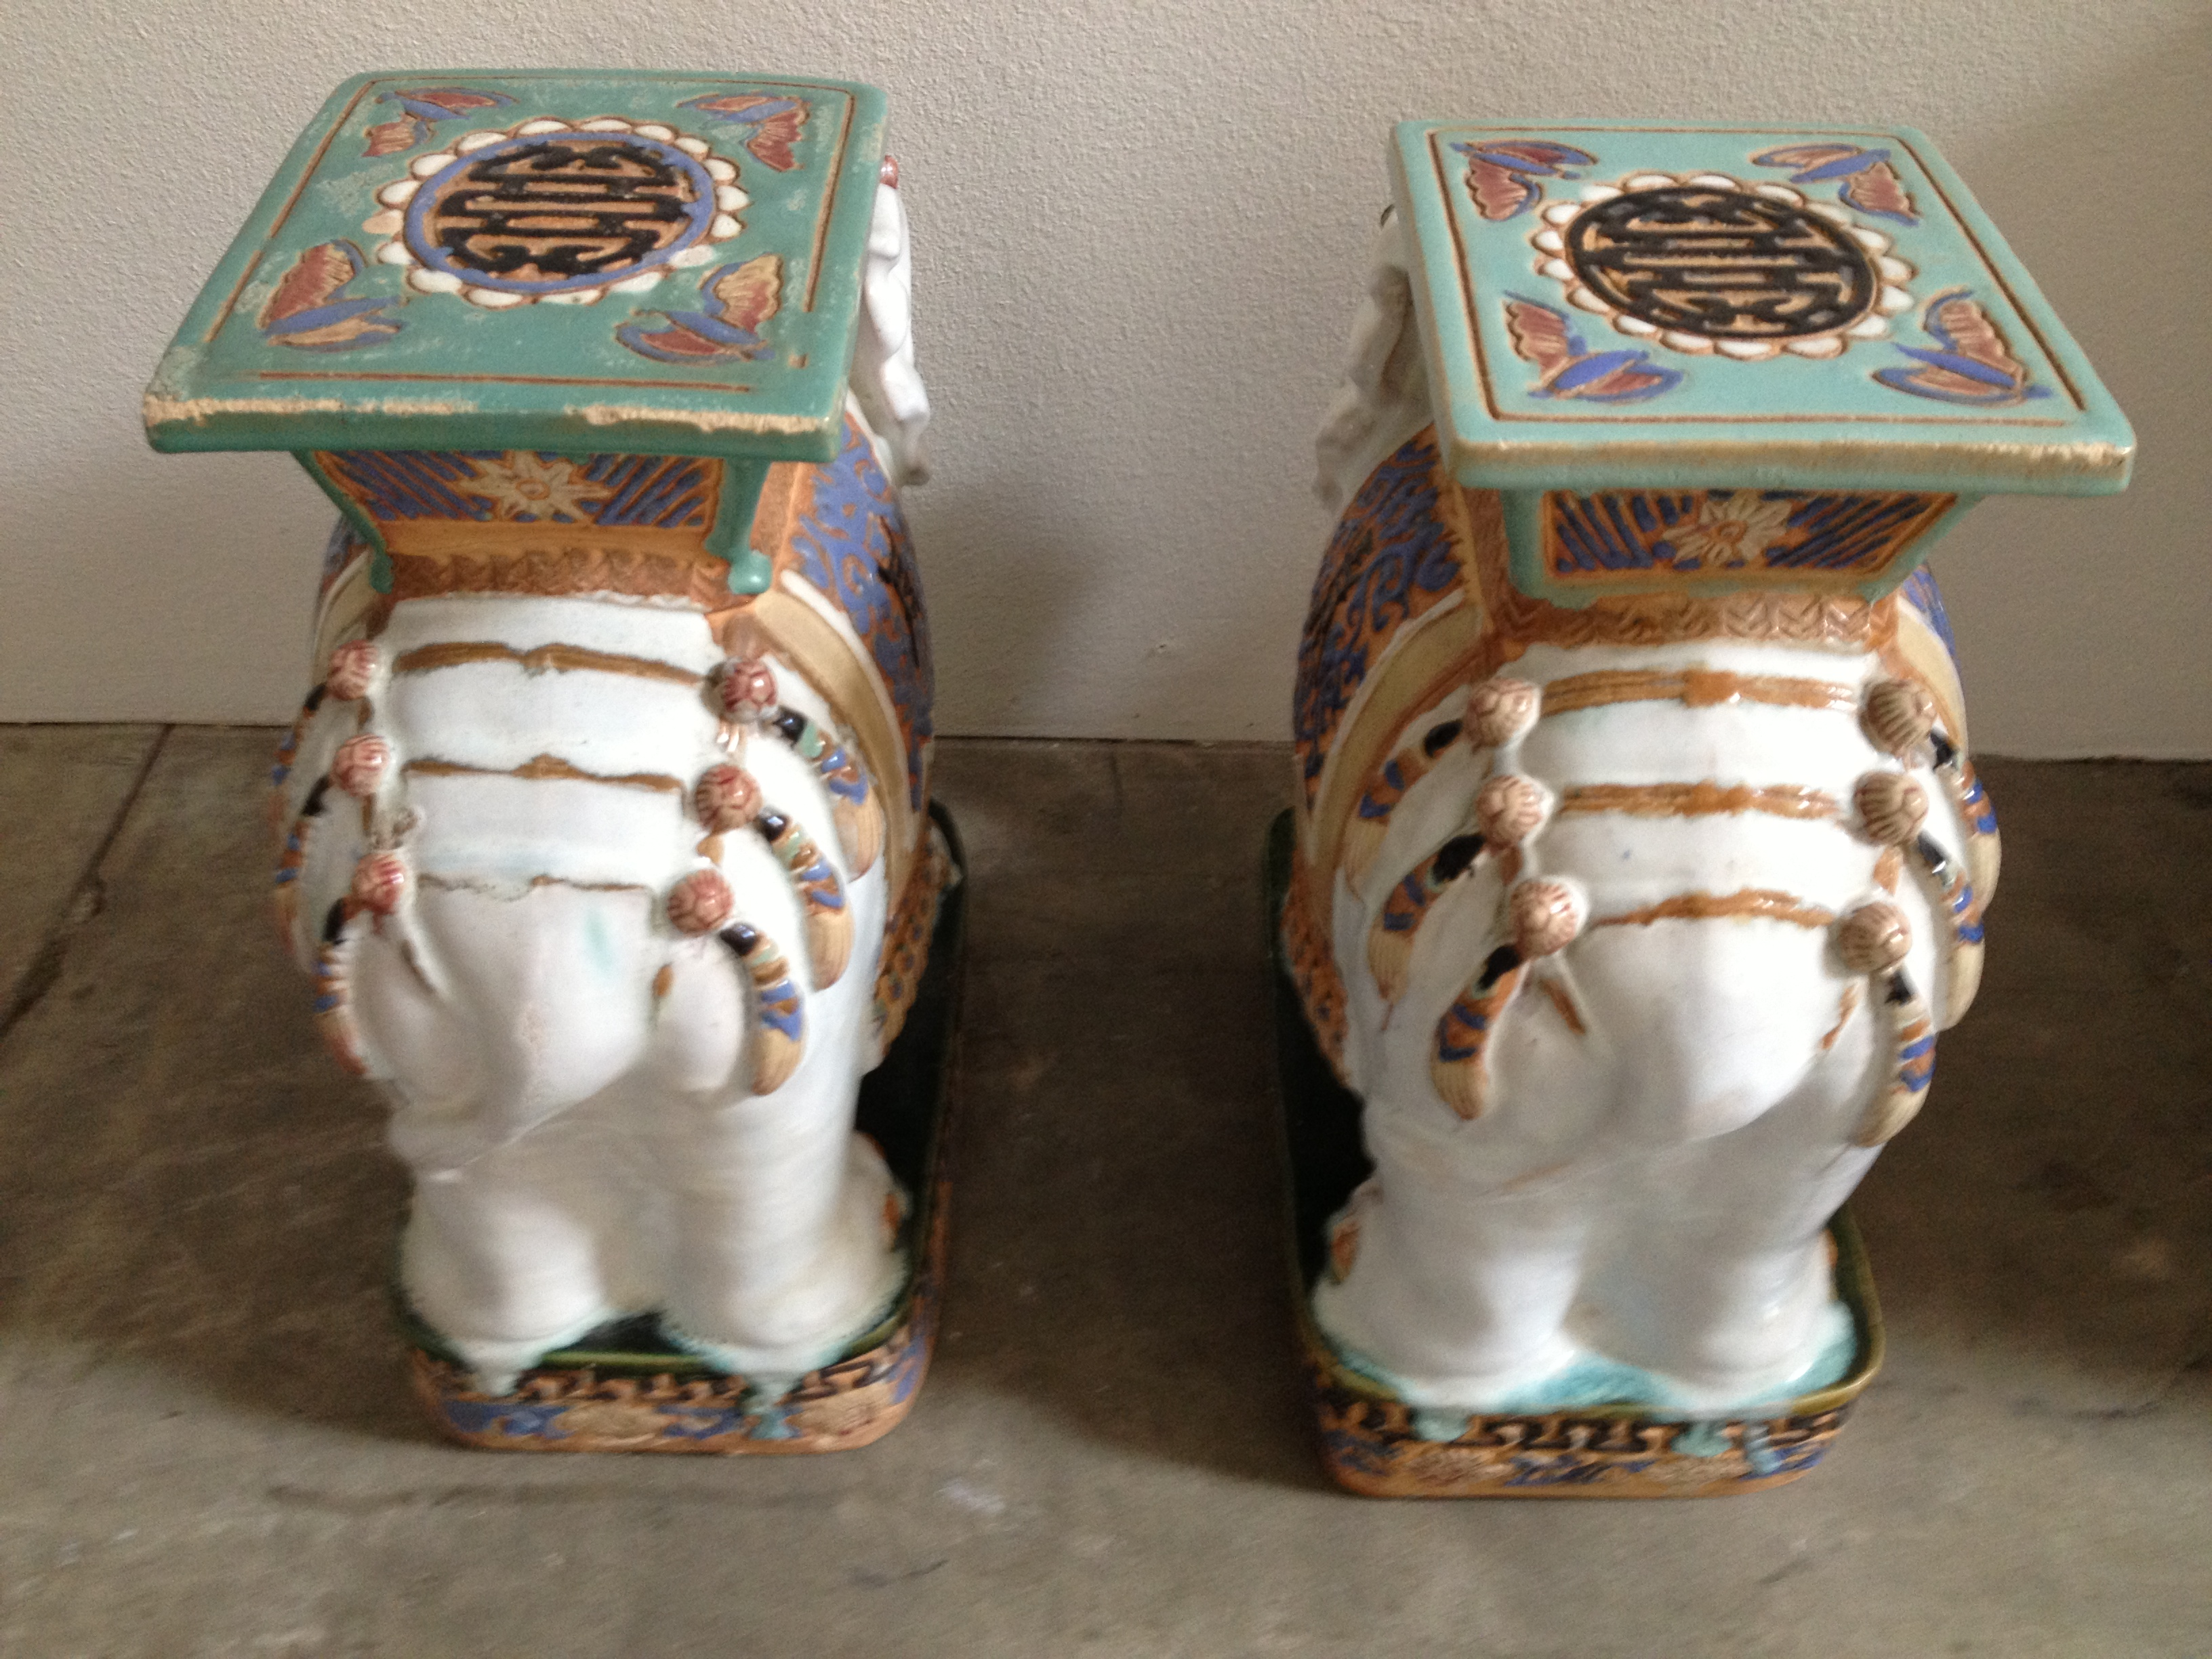 Henry and Mac Ceramic Elephant Garden Stools - Modern Vintage Mix